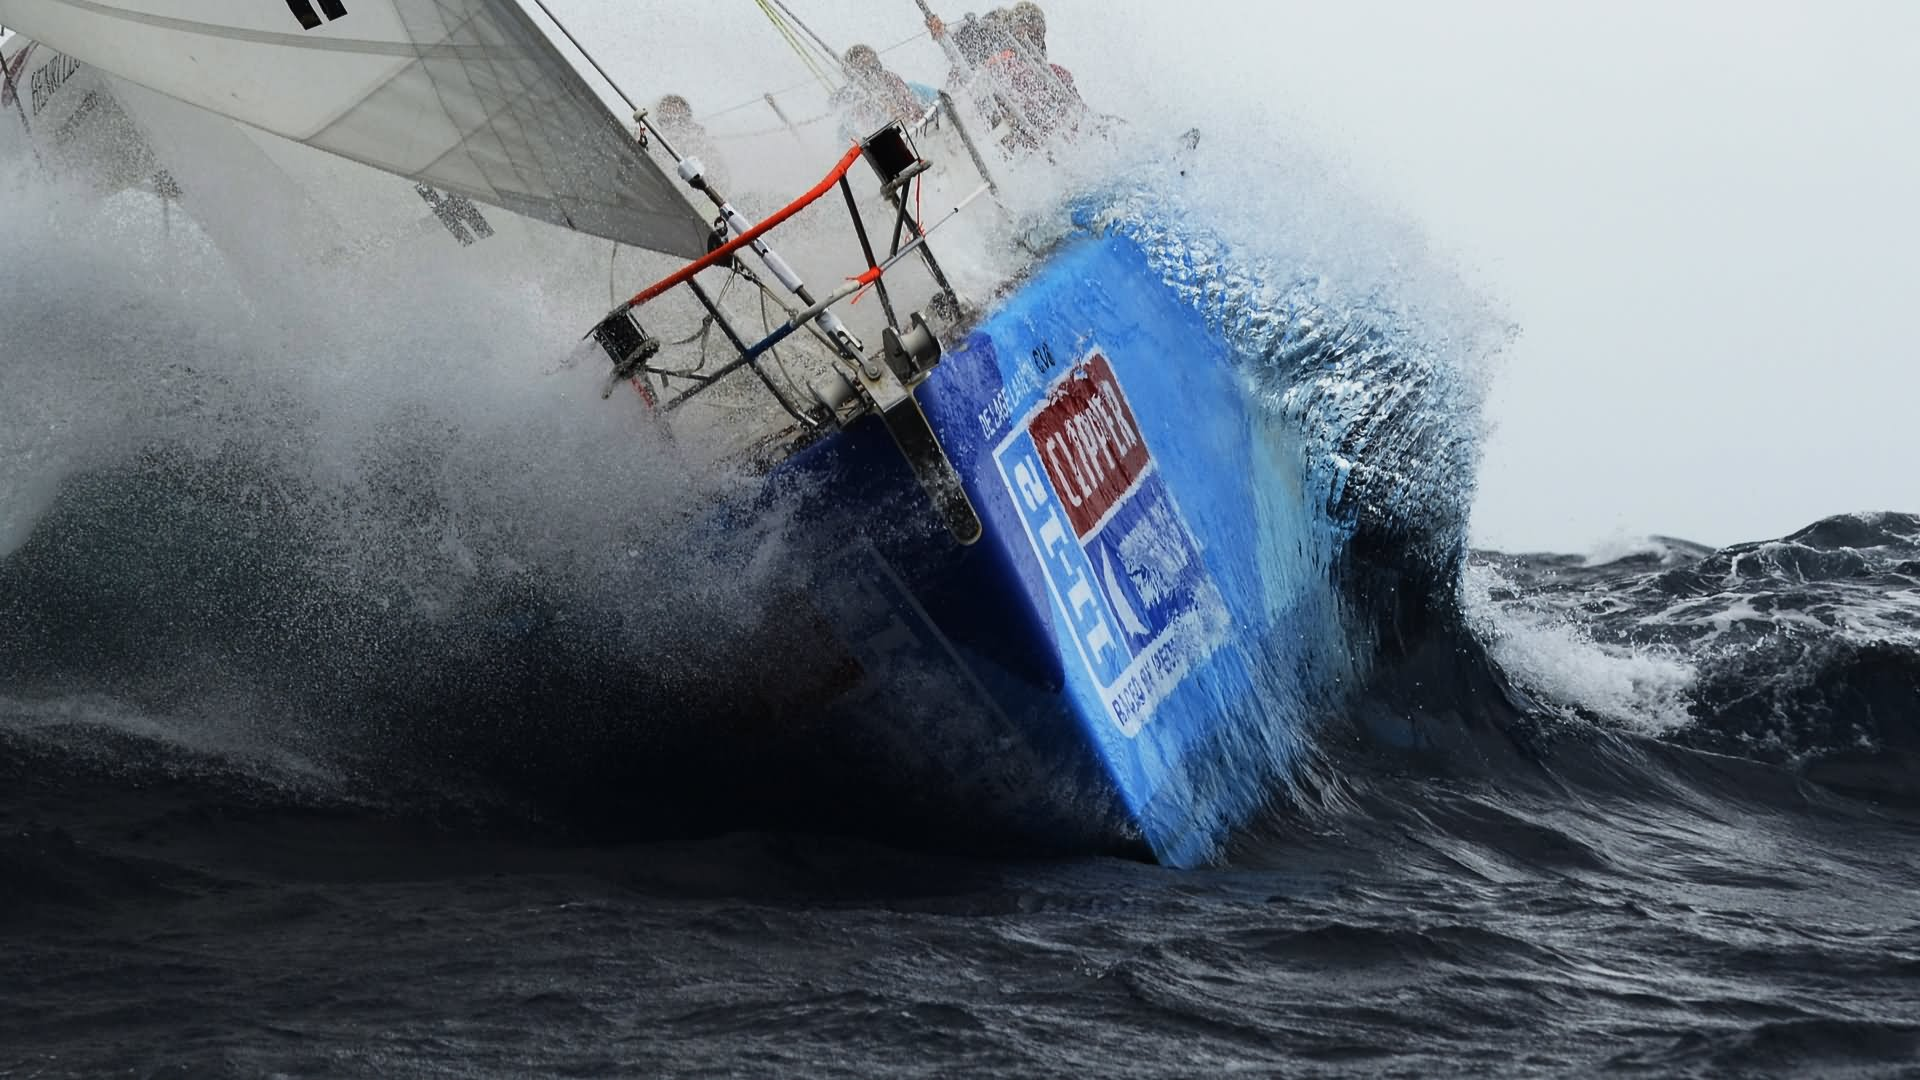 southern-ocean-clipper-around-the-world-race.jpg